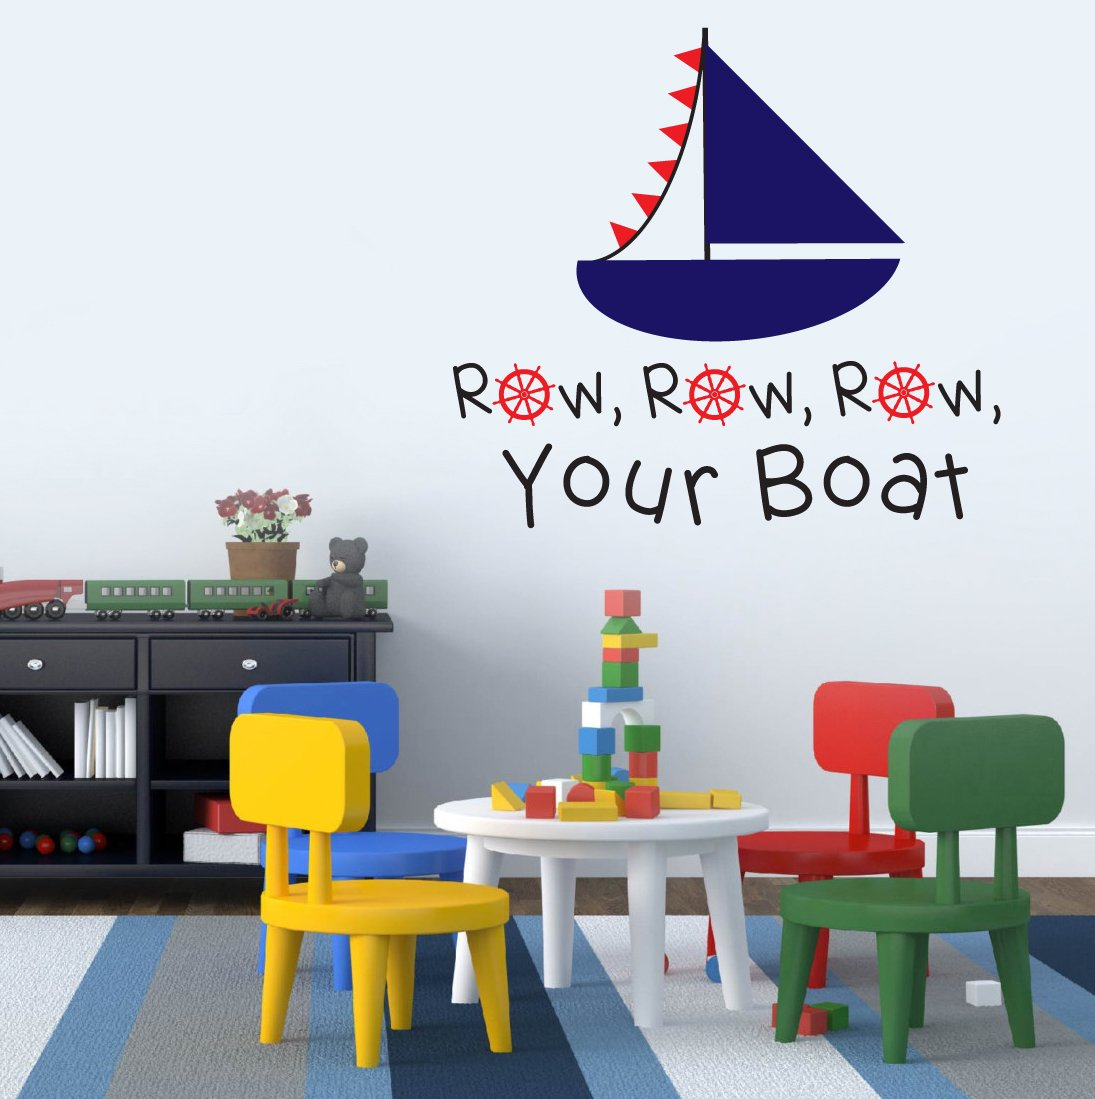 Row Row Row Your Boat Nautical Theme Sailor Childrenu0027s Room Kids Room Baby  Nursery Playroom Wall Sticker Decal Mural Vinyl Transfer Wall Art:  Amazon.co.uk: ...